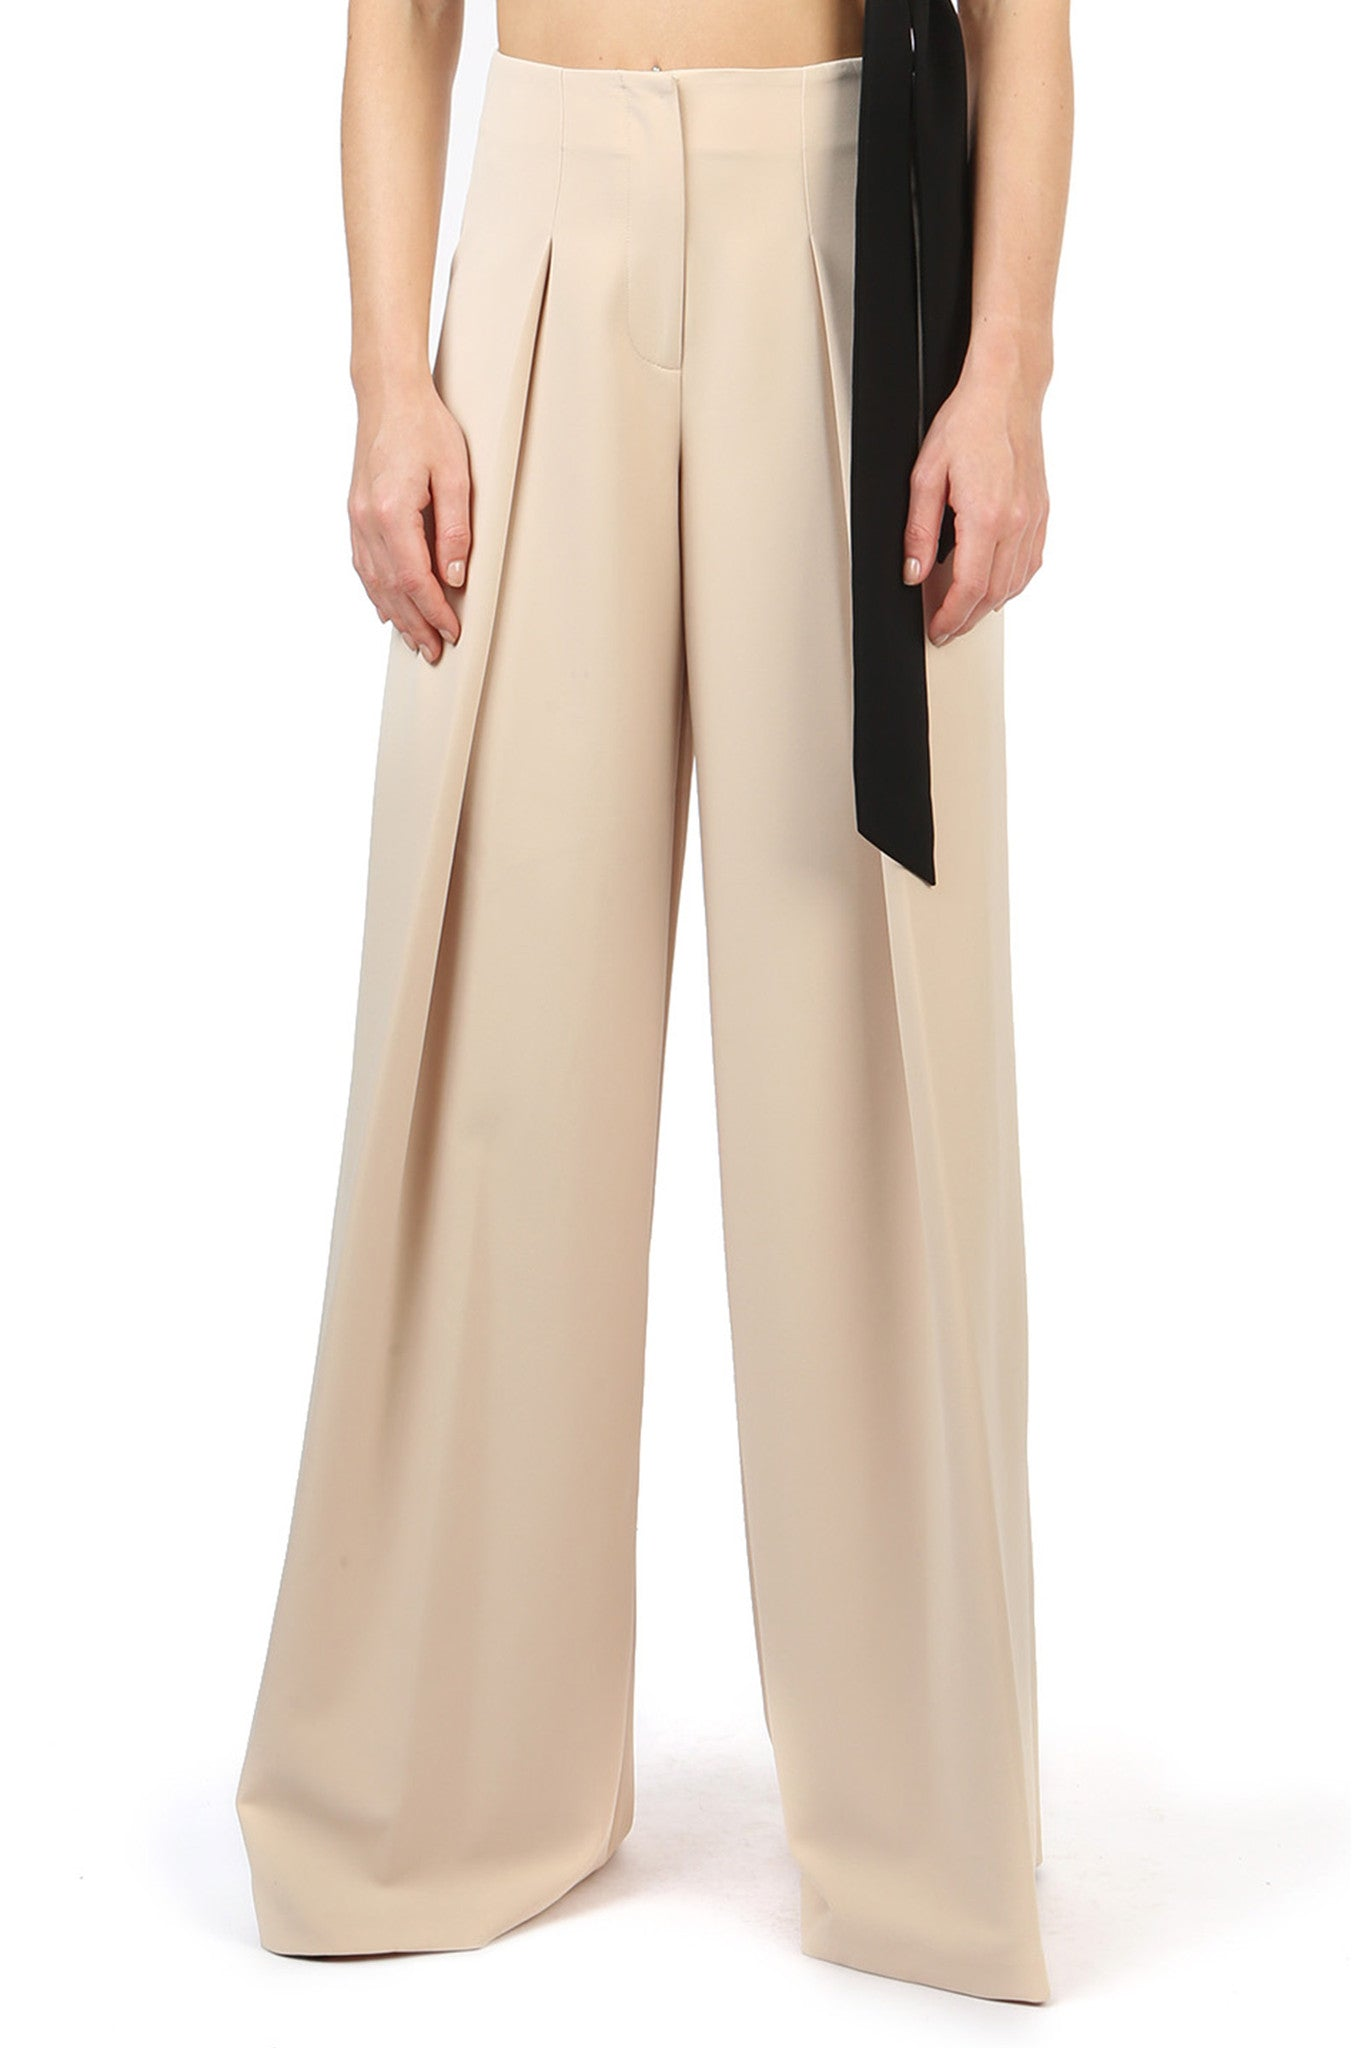 Jay Godfrey Sand Wide-Leg Pants - Front View